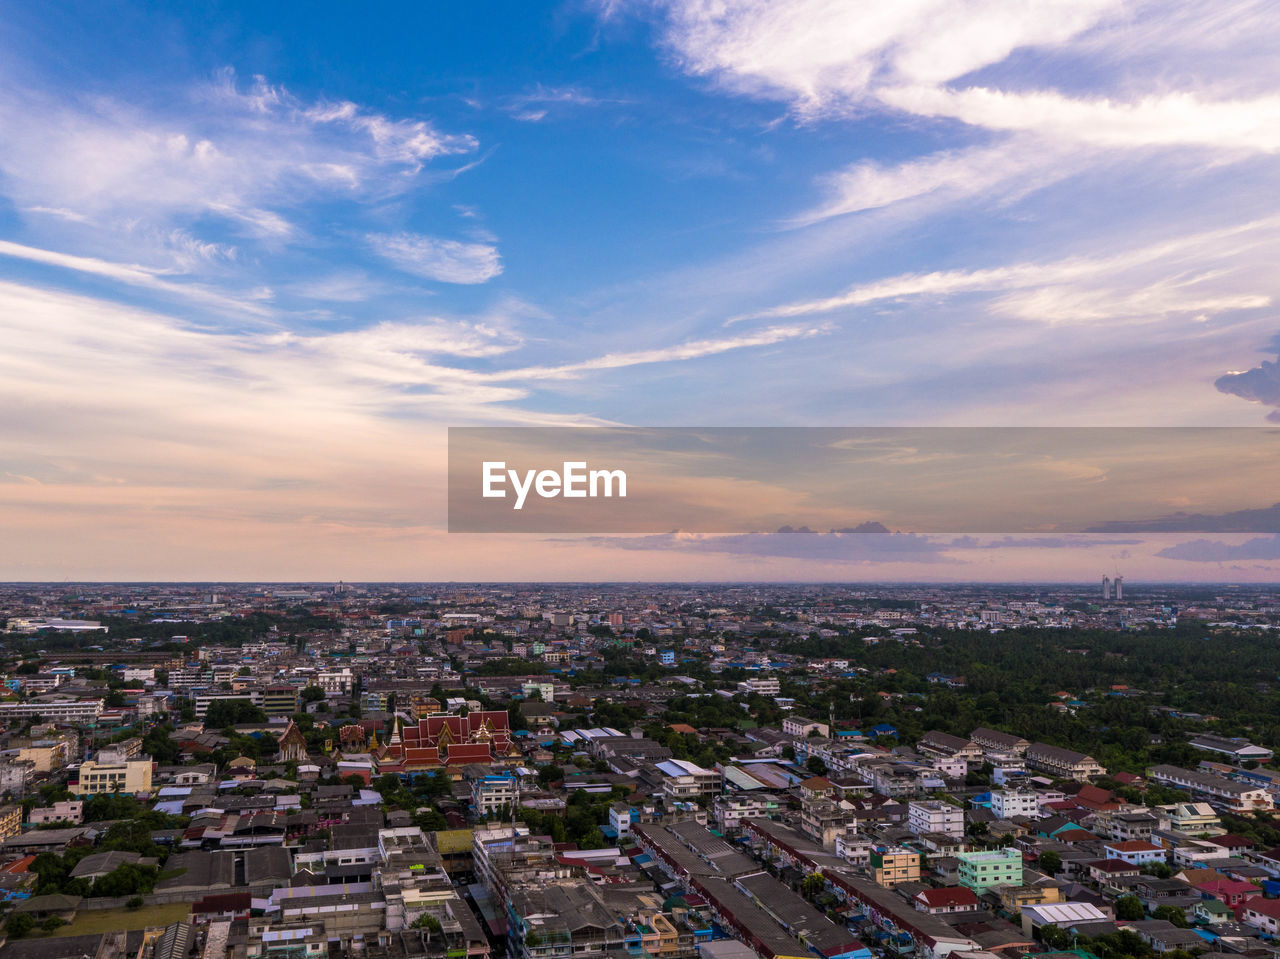 architecture, sky, building exterior, cityscape, built structure, crowded, city, cloud - sky, sunset, residential building, town, outdoors, community, sea, residential, nature, day